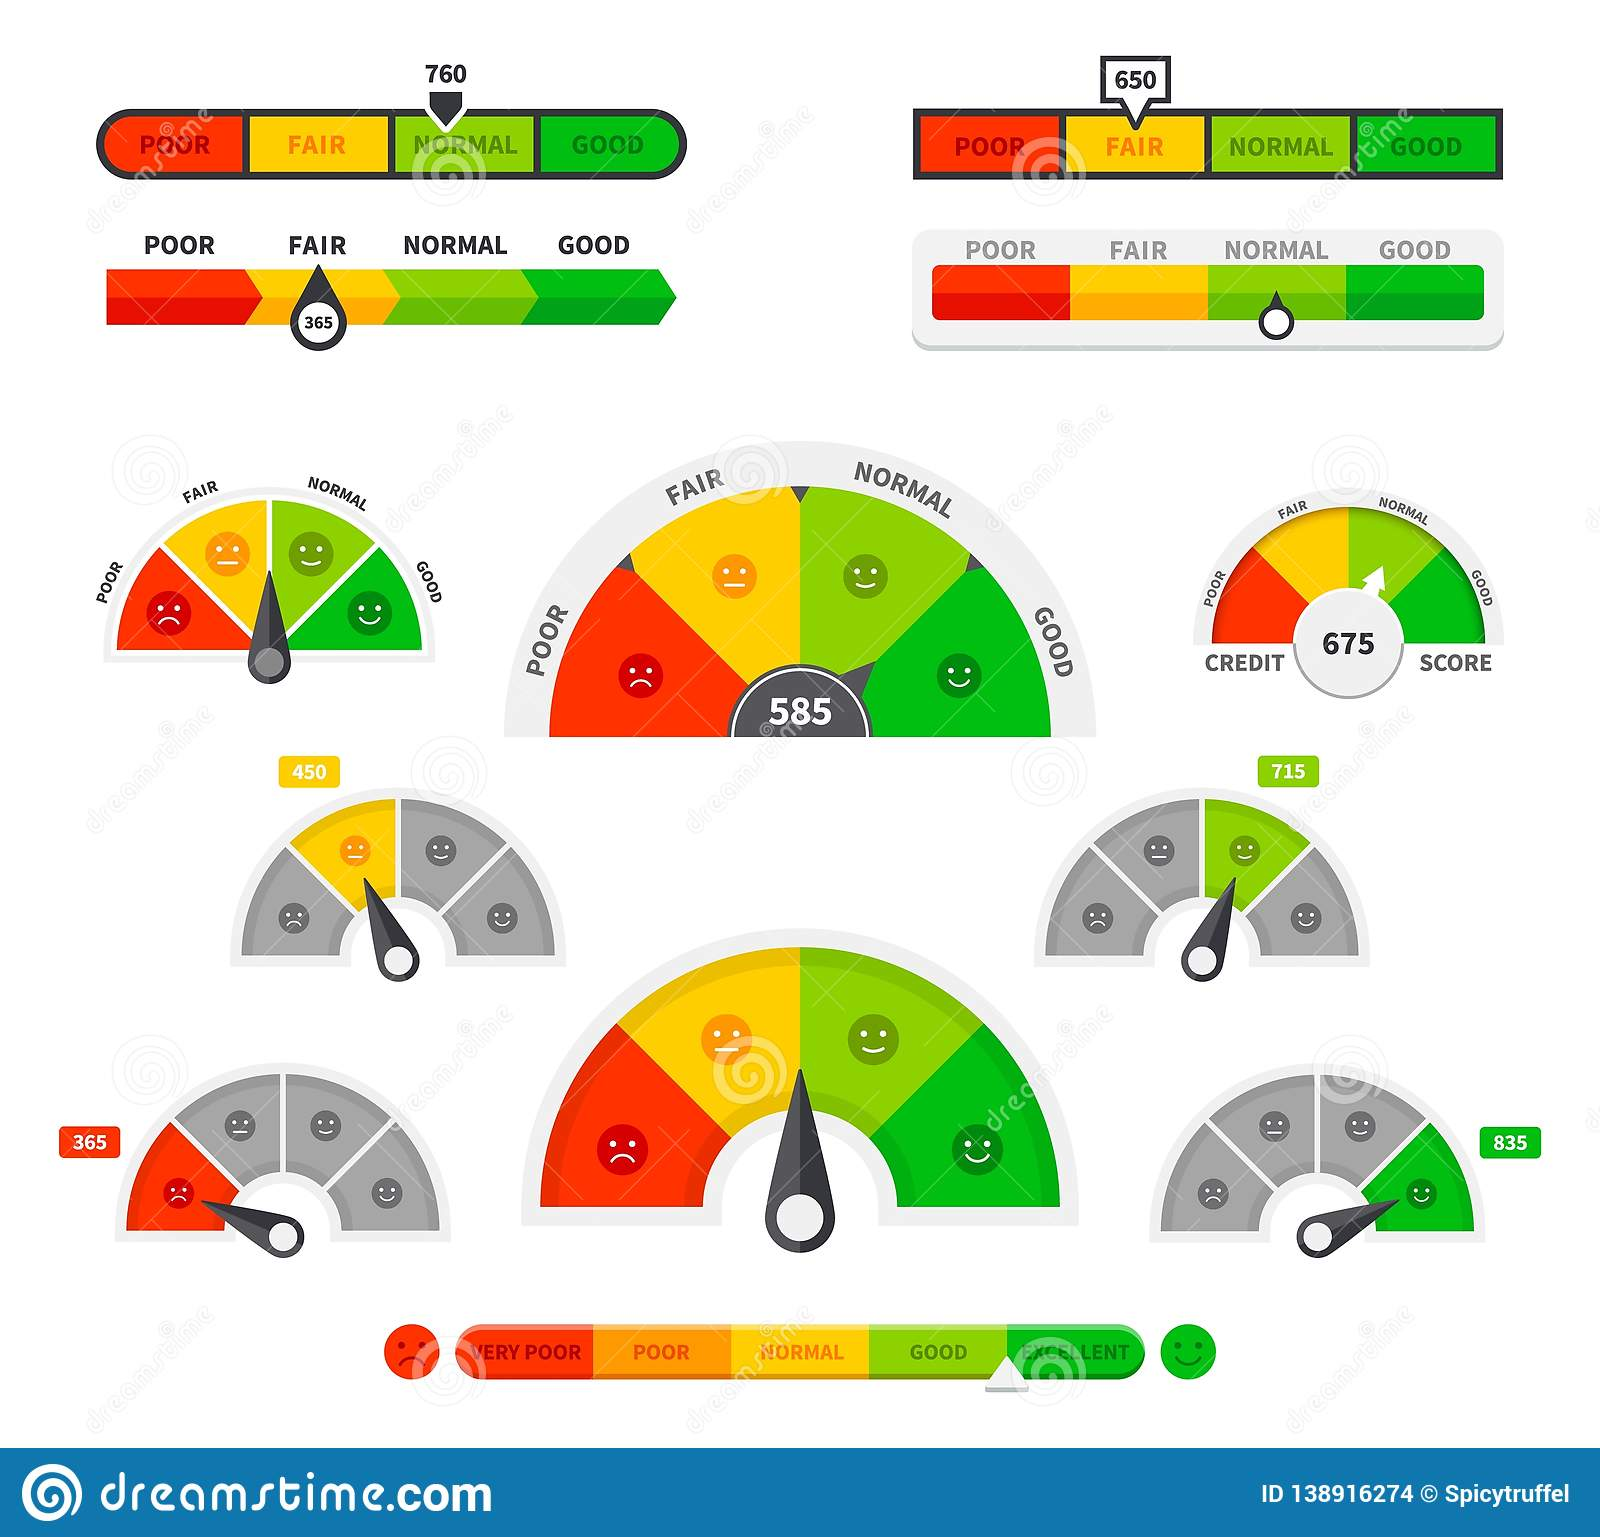 675 Credit Score >> Scoring Indicators Goods Gauge Speedometers Rating Meter